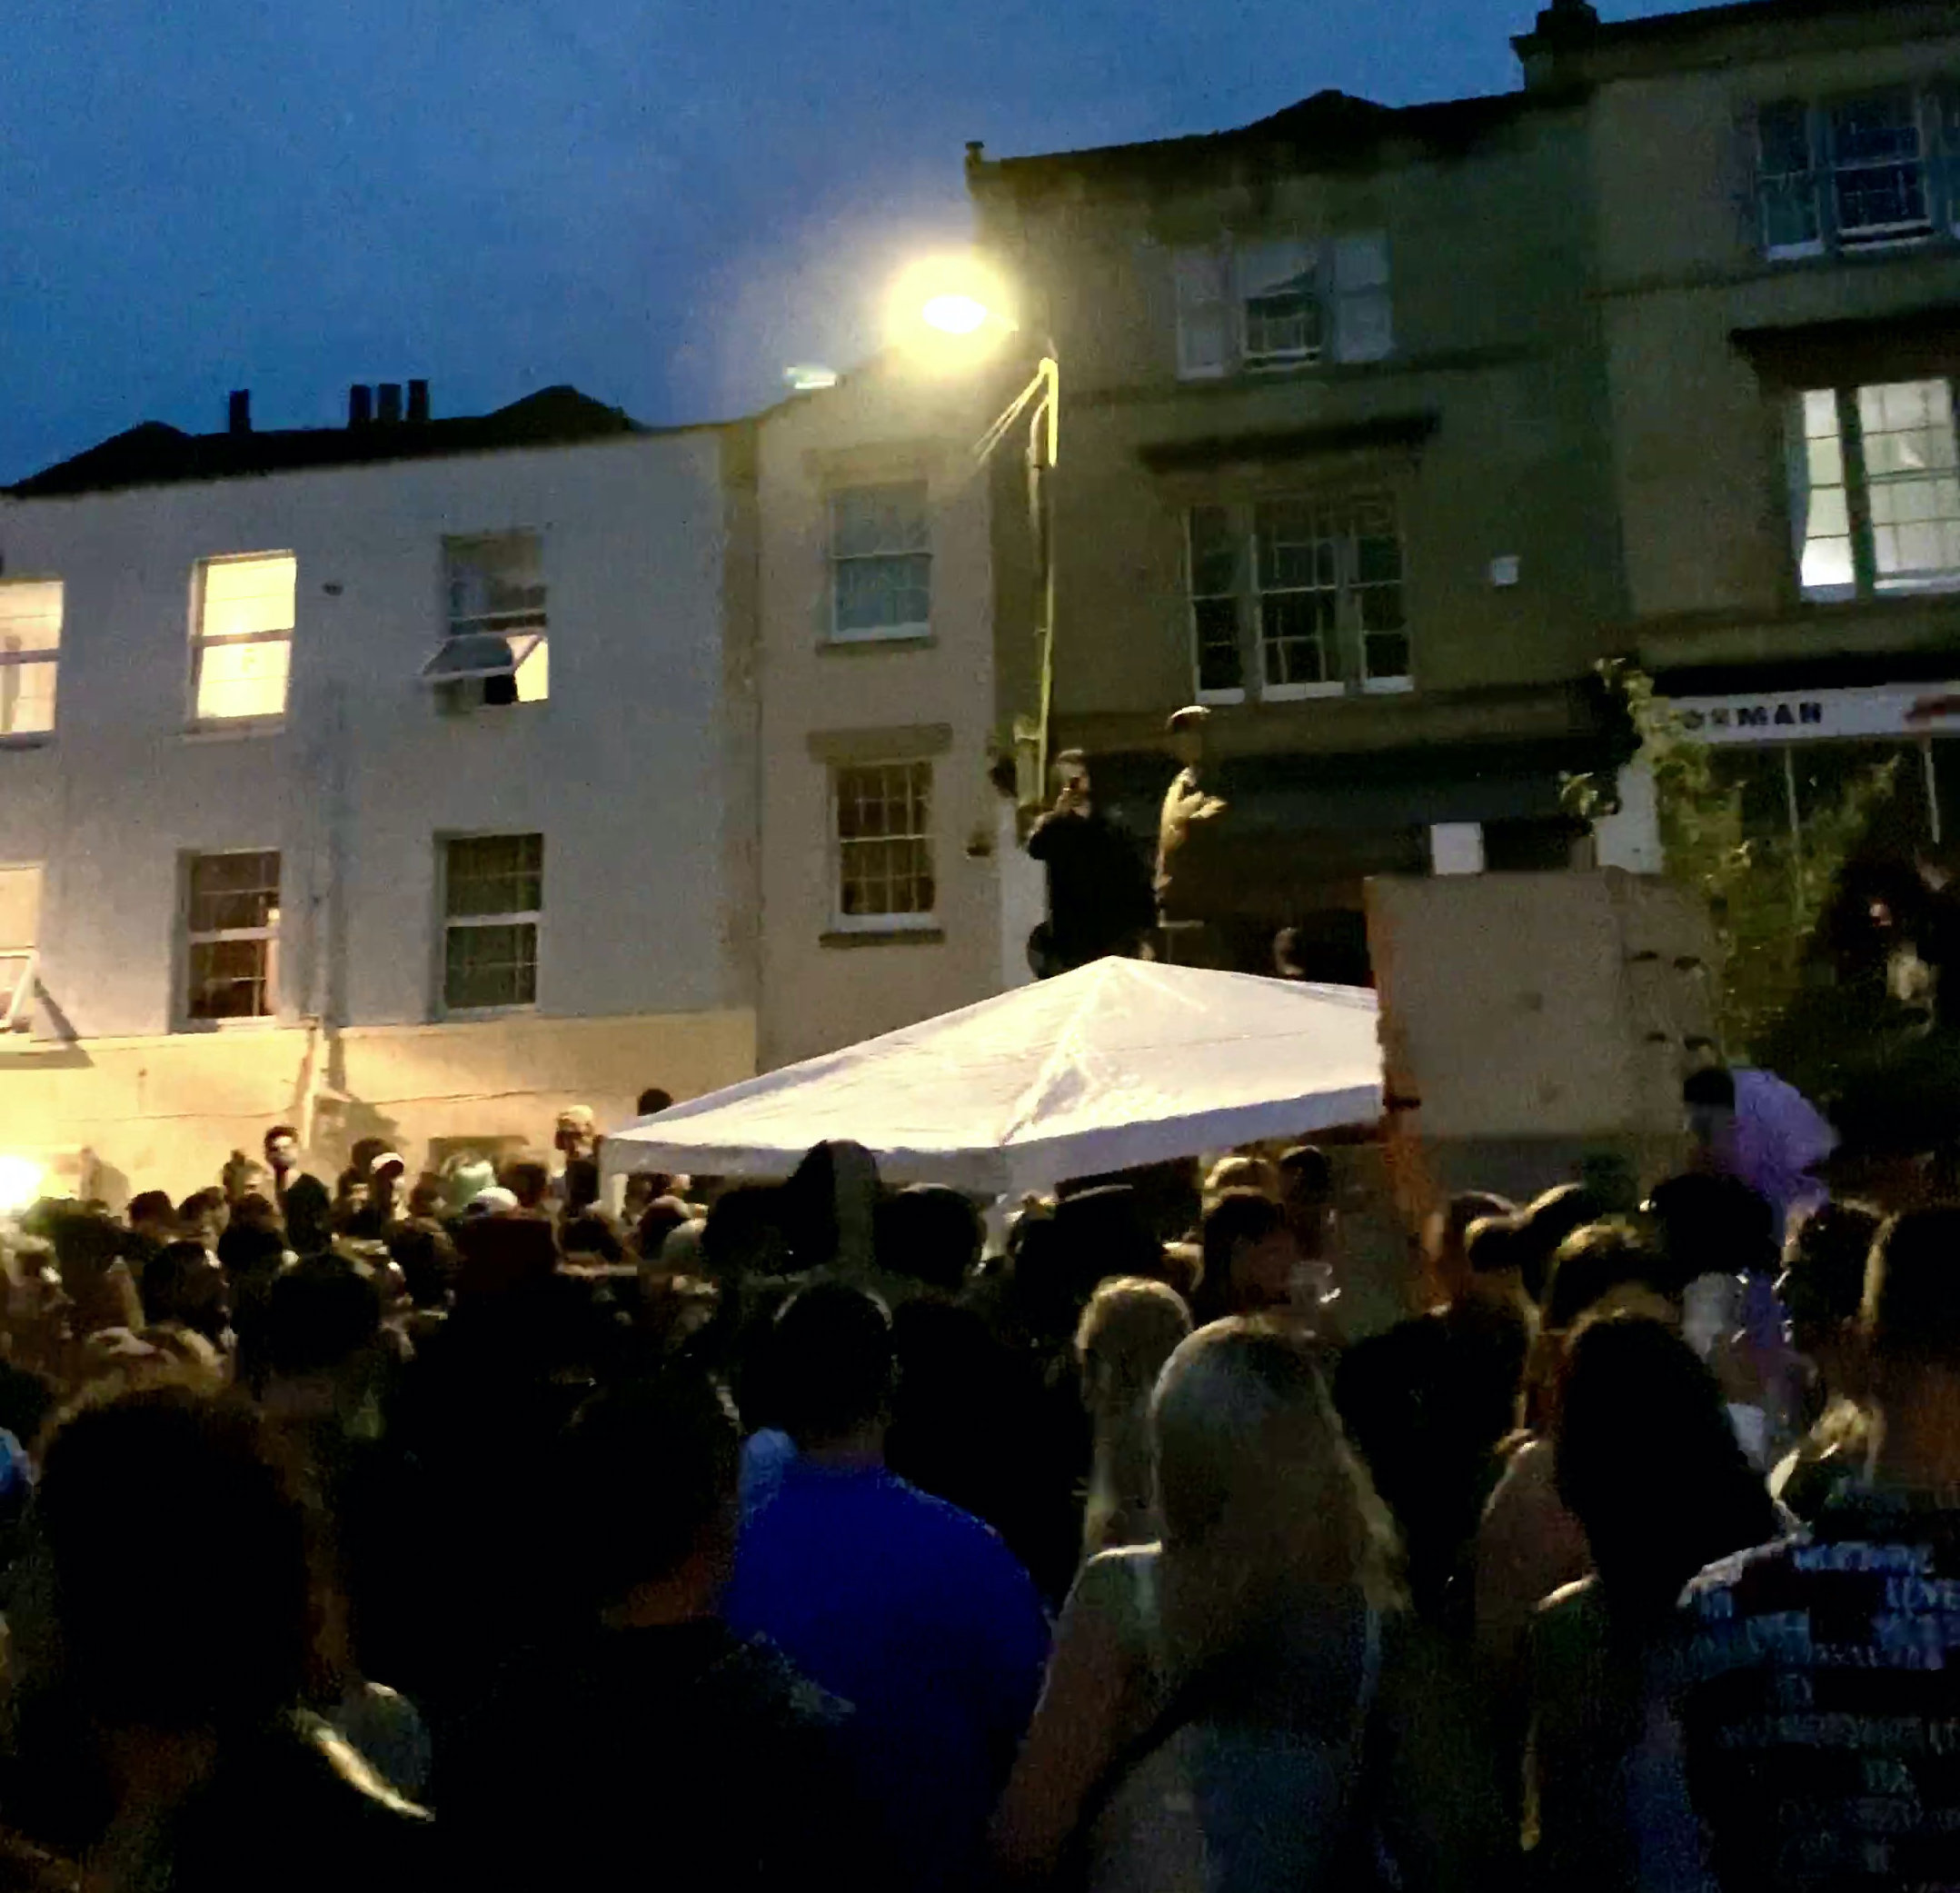 Hundreds of revellers took to a residential street in Stokes Croft, Bristol, for an all-night rave. (SWNS)